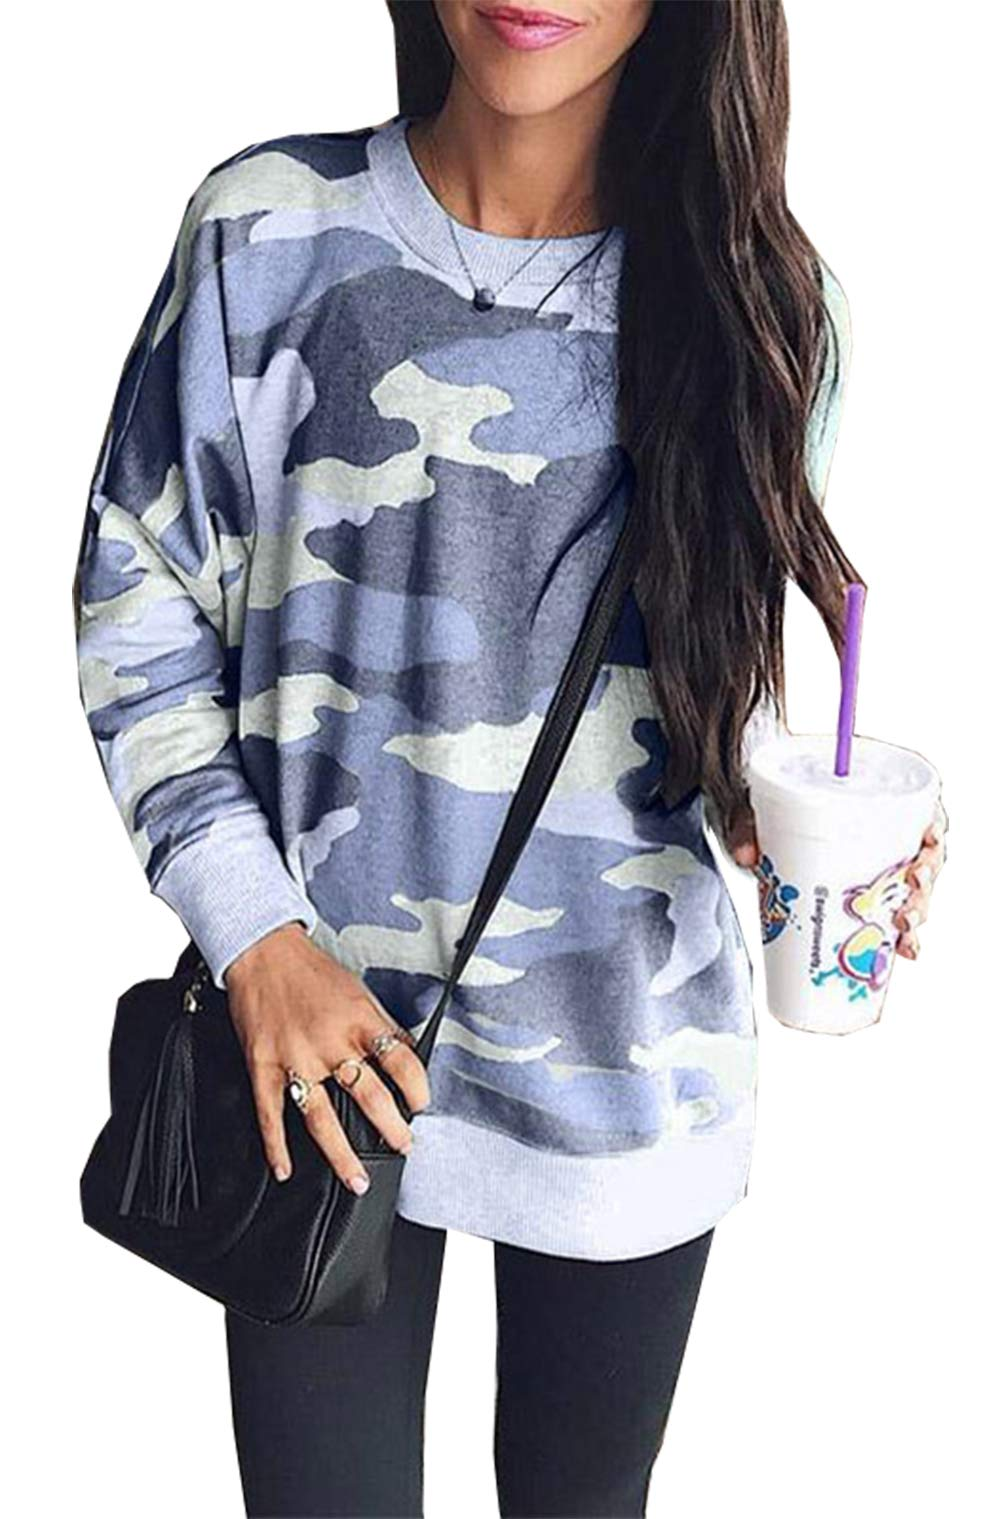 BTFBM Women Camouflage Print Long Sleeve Crew Neck Loose Fit Casual Sweatshirt Pullover Tops Shirts (Blue, X-Large)